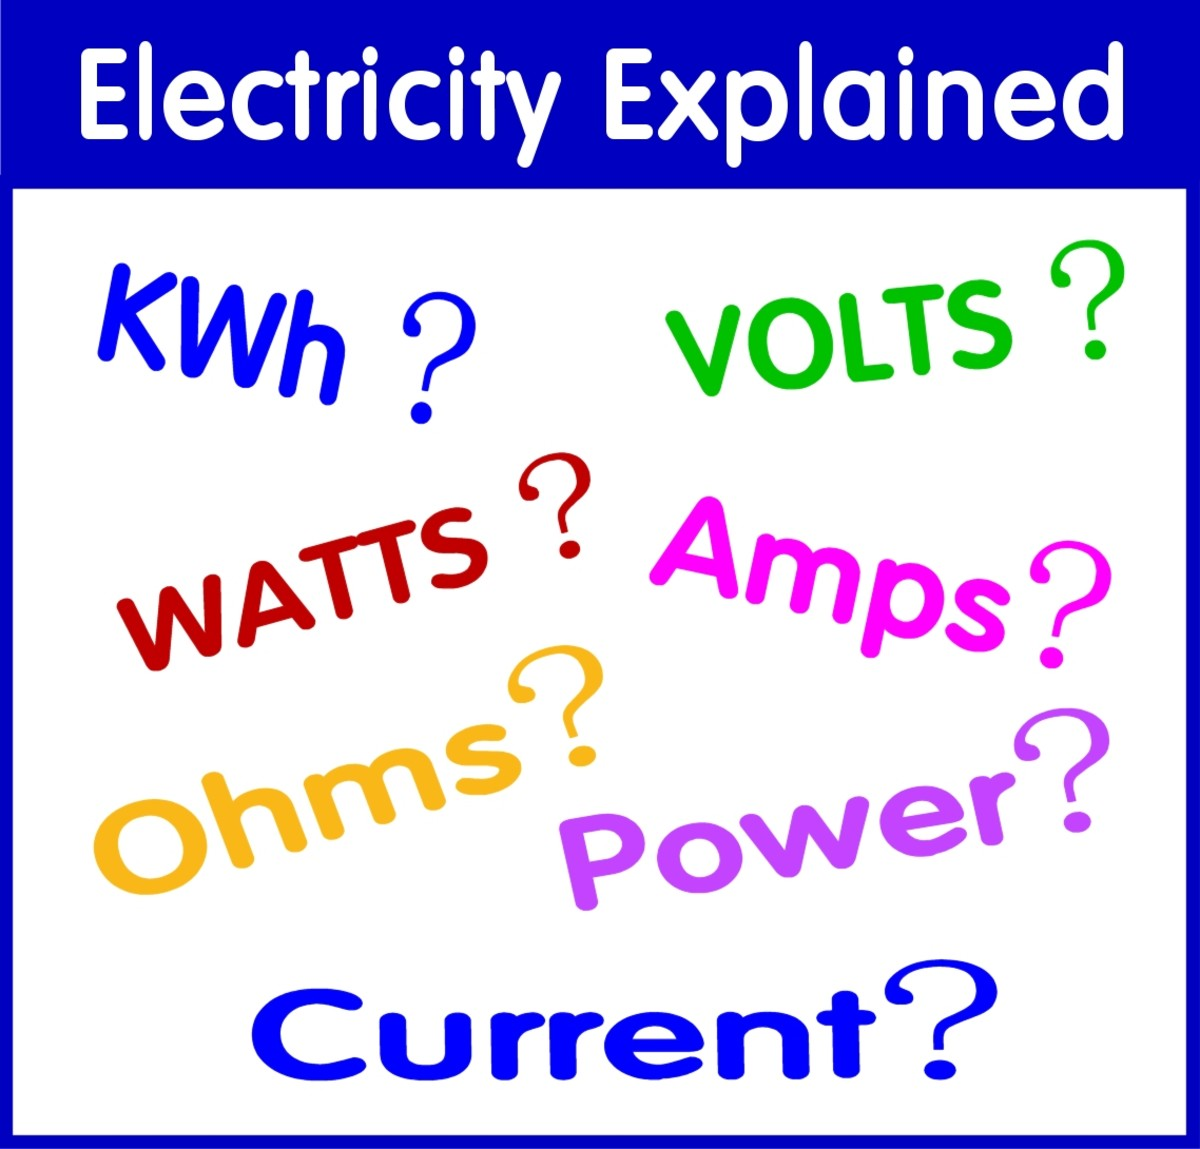 Understanding Electricity: What Are Volts, Amps, Watts, Ohms, AC and DC?